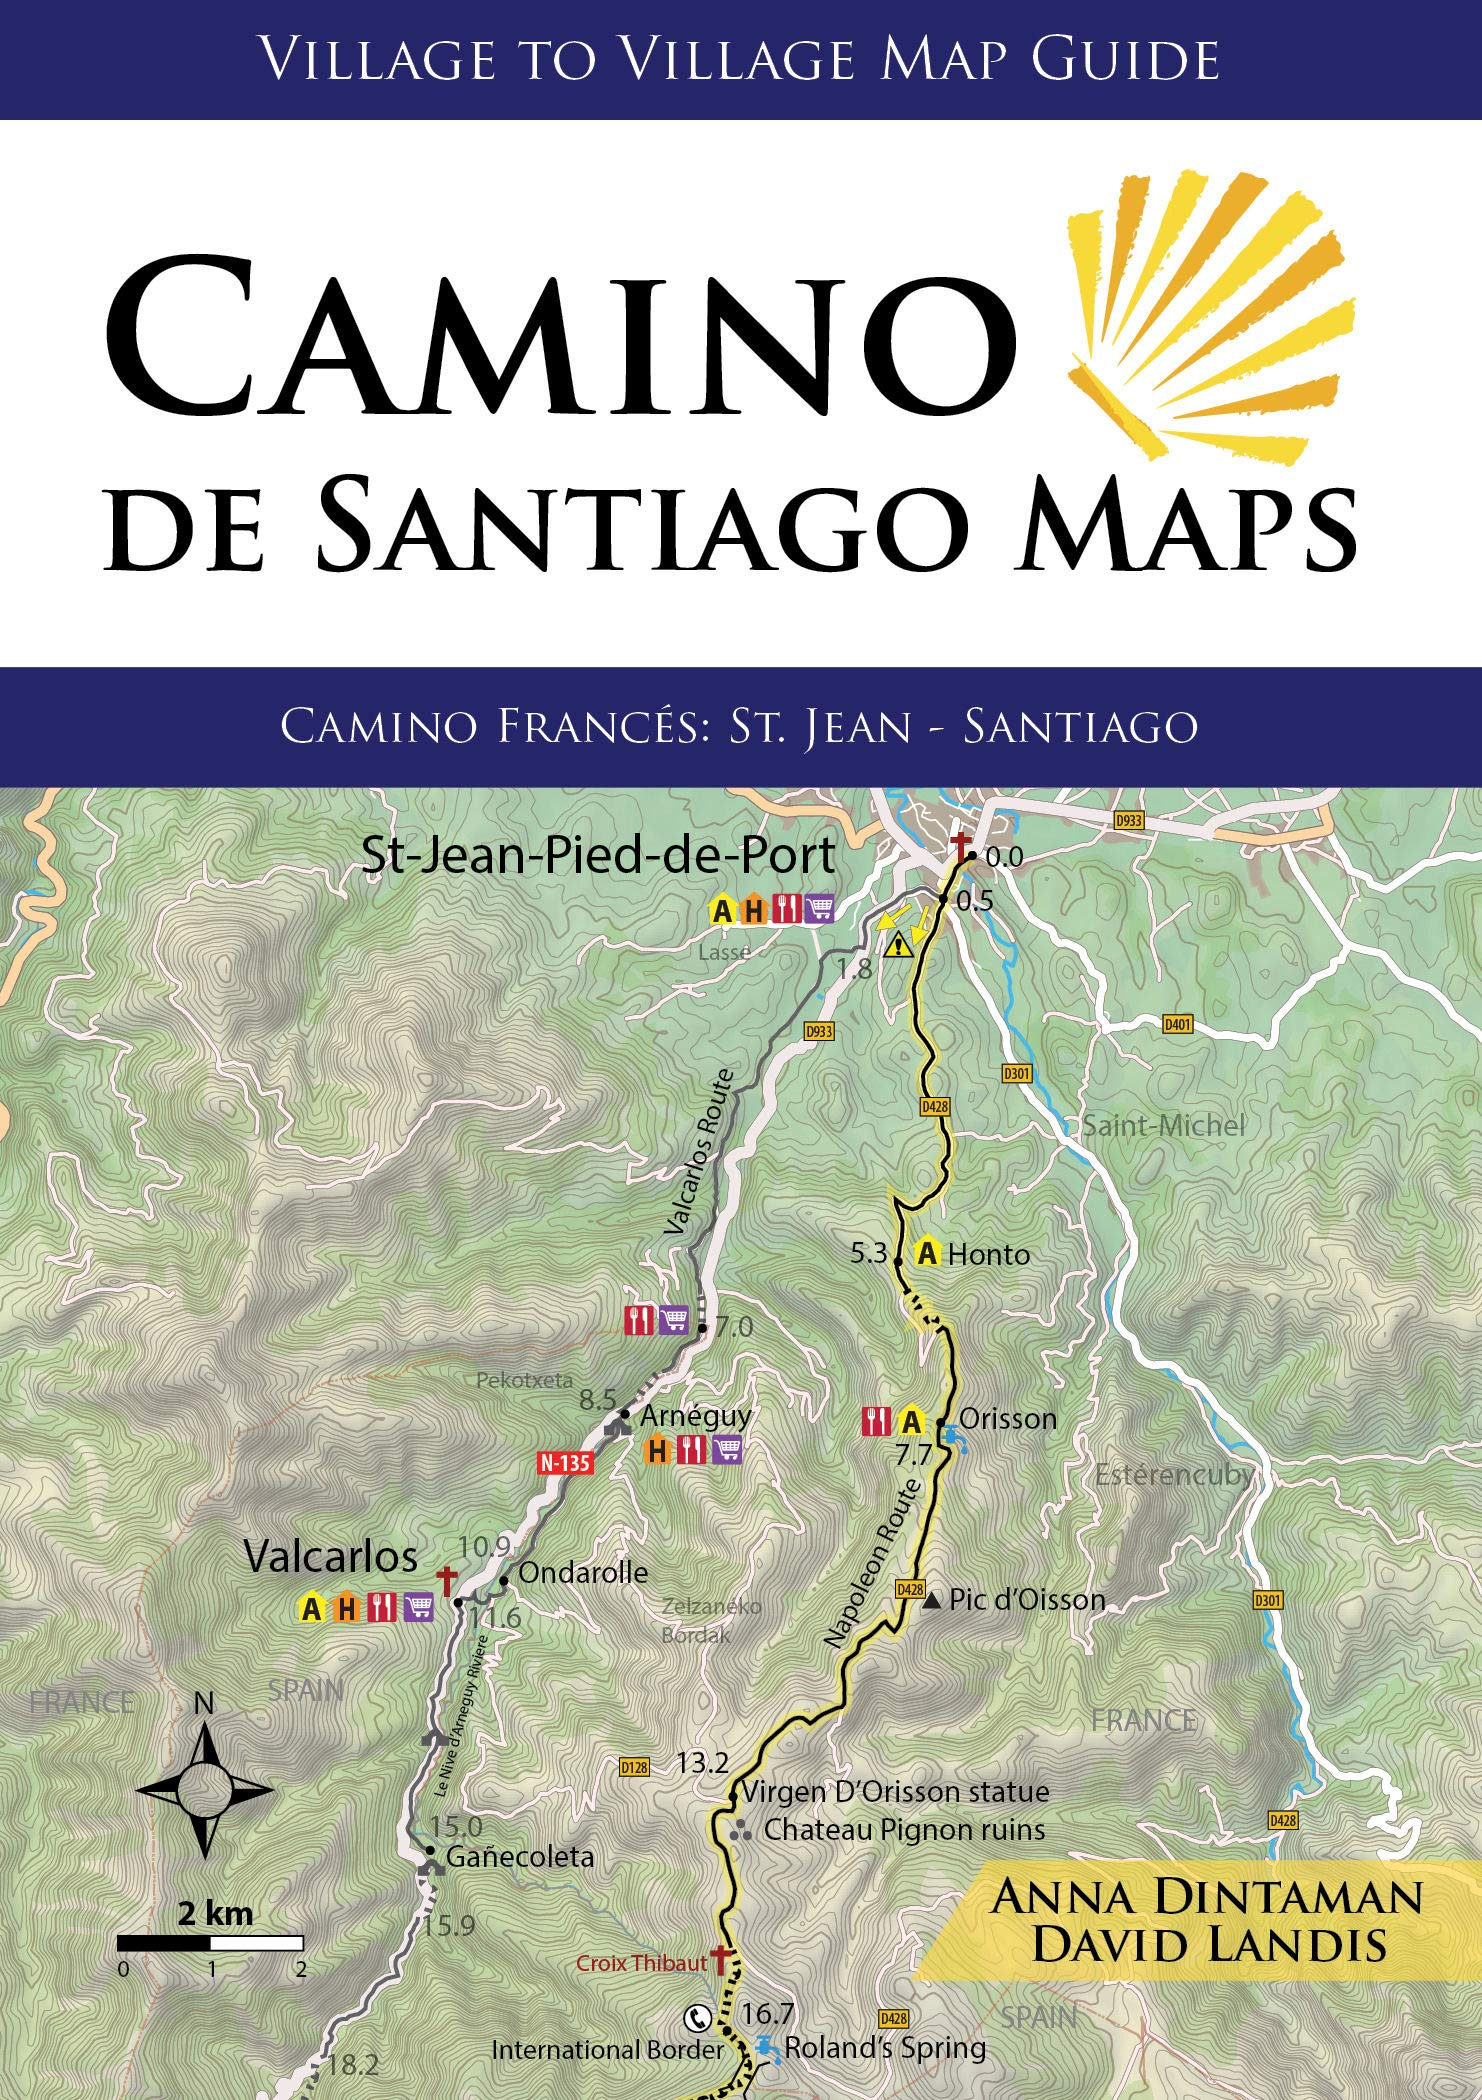 Camino de Santiago Maps, Camino Francés: St. Jean - Santiago (Village to  Village Map Guide): Anna Dintaman, David Landis: 9781947474086: Amazon.com:  Books